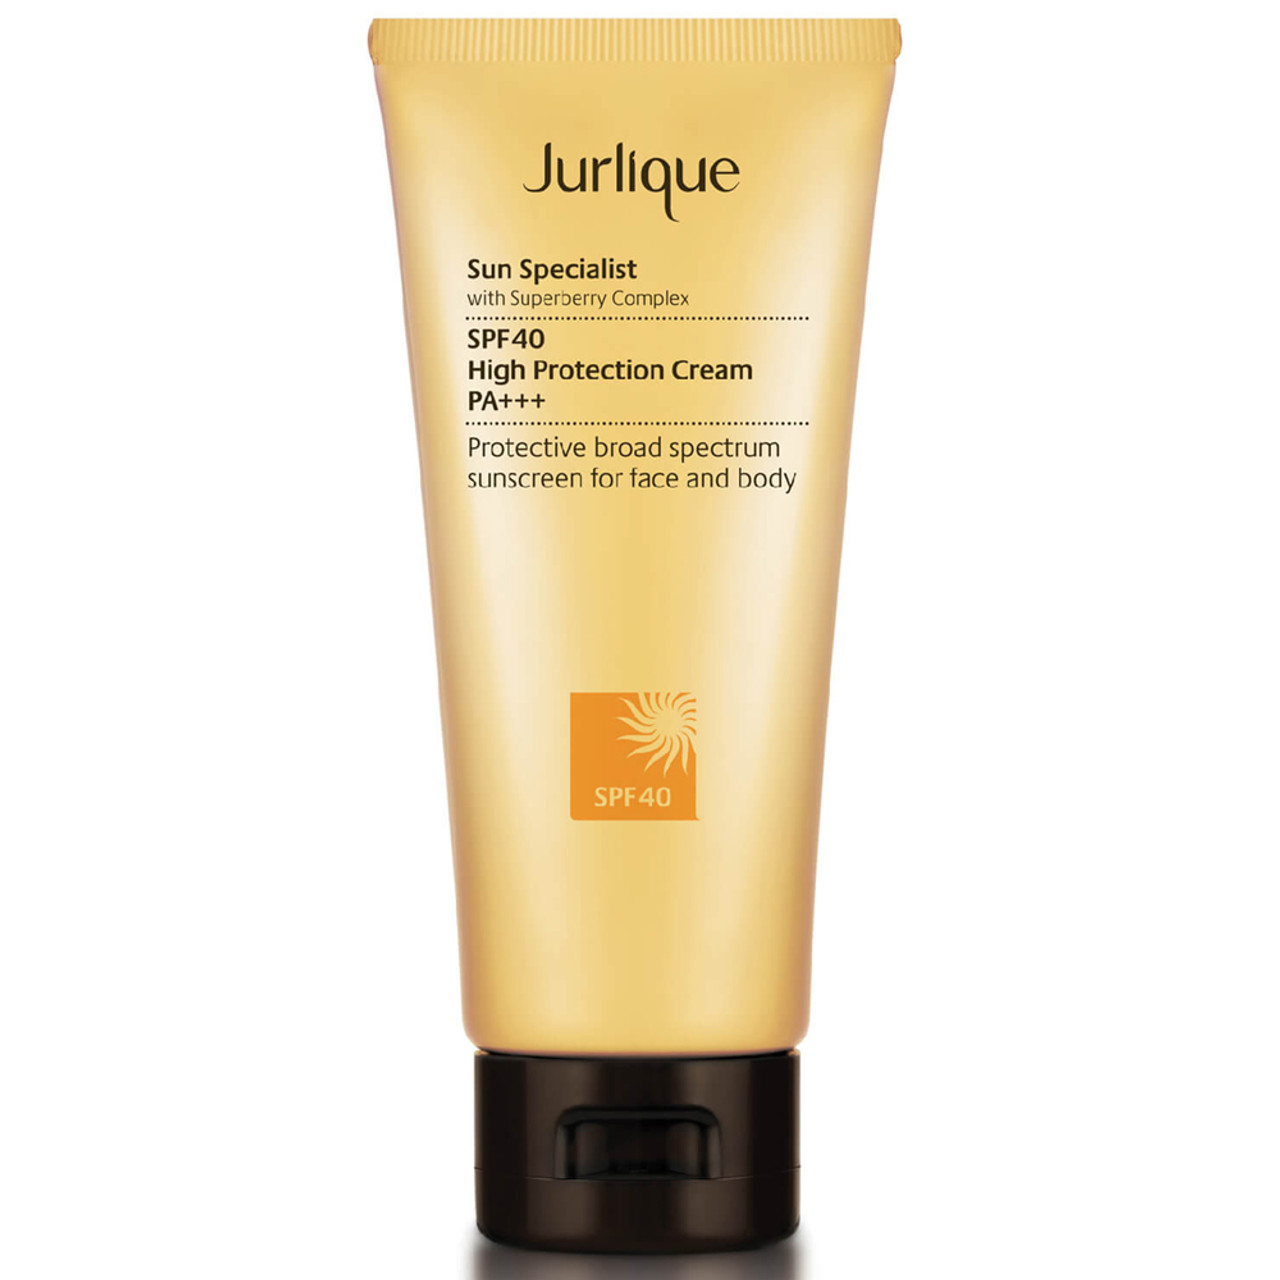 Jurlique Sun Specialist SPF 40 High Protection Cream